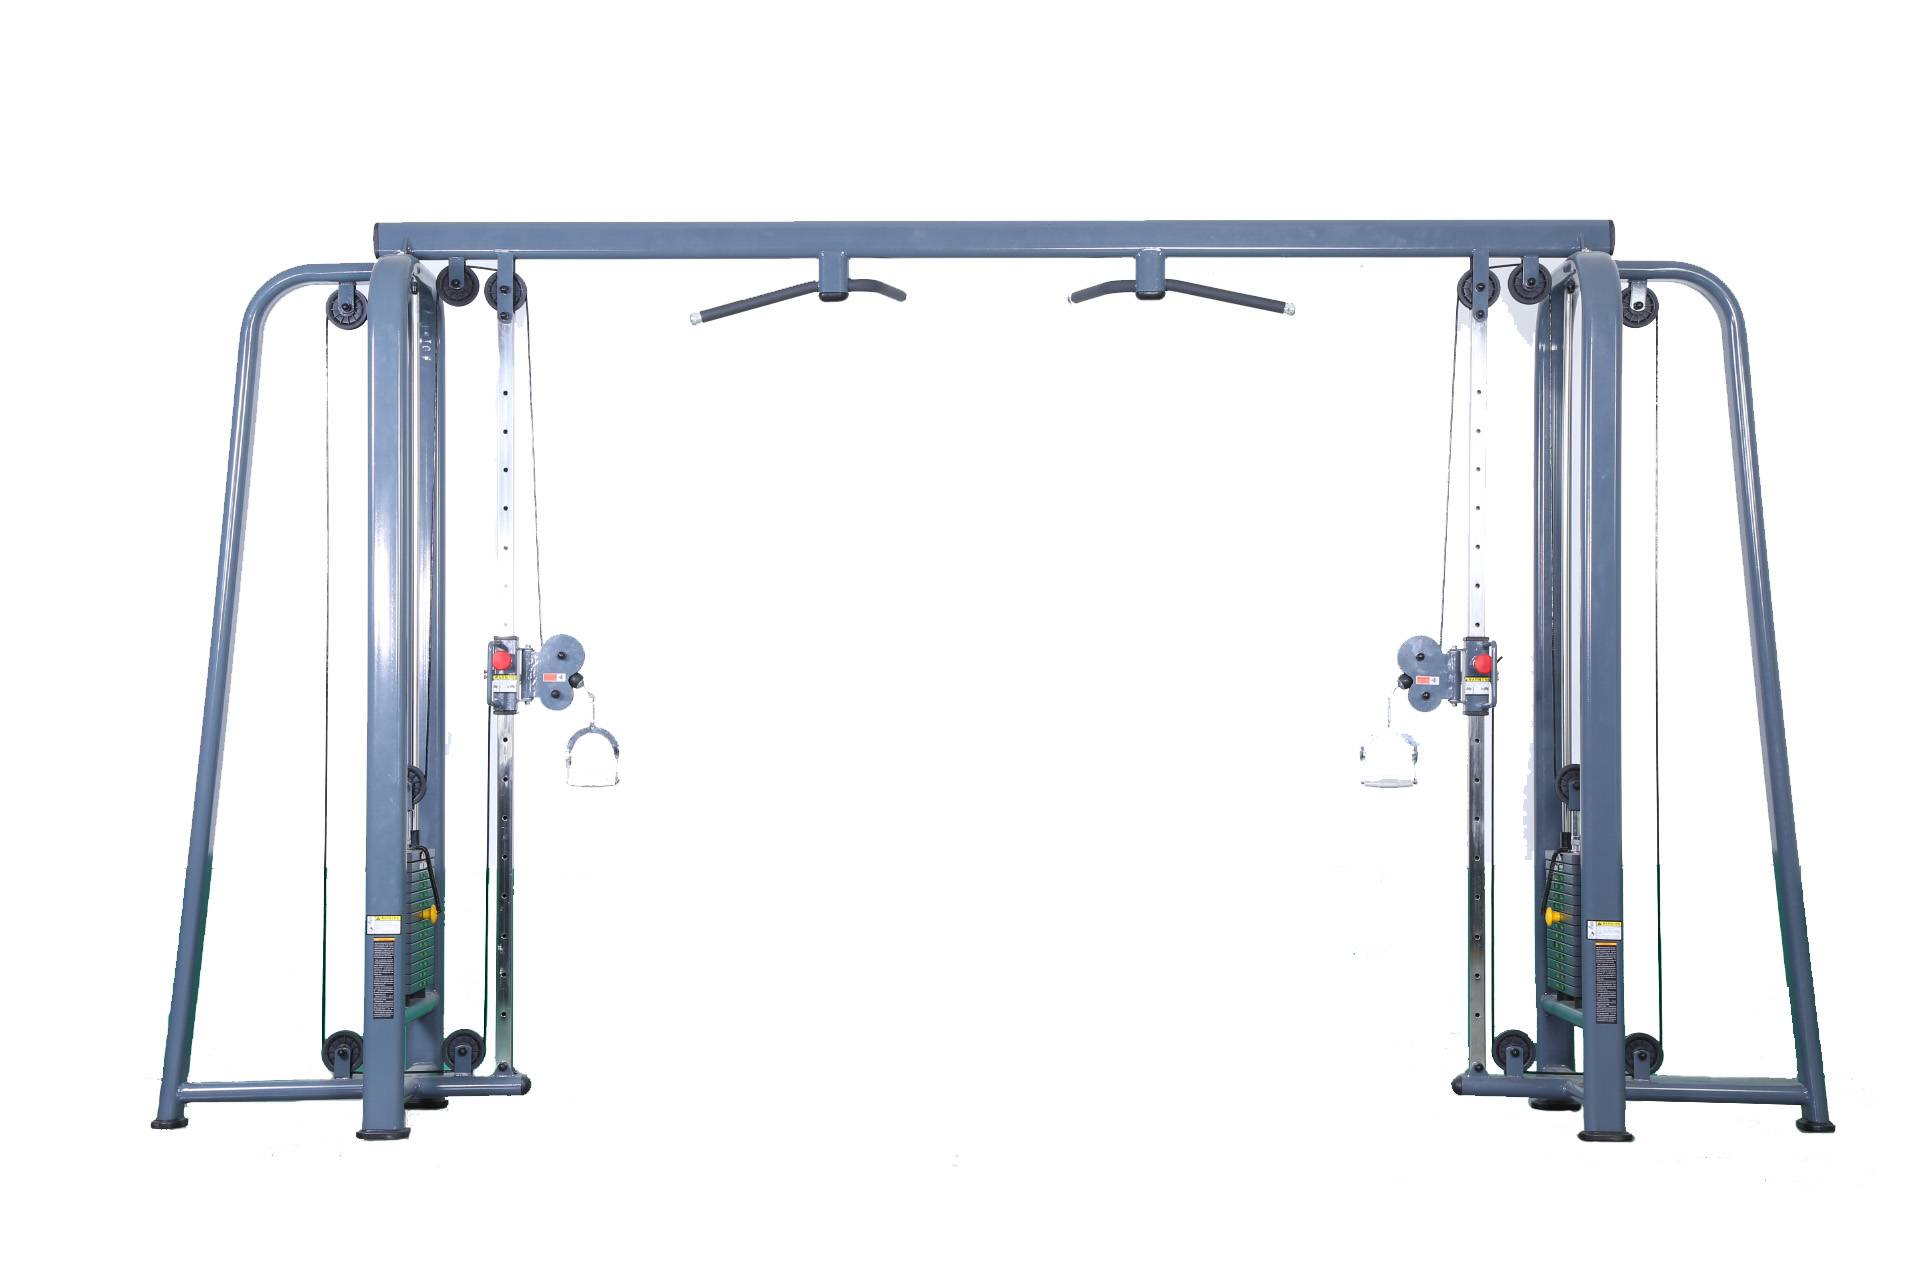 SK-326 Cable crossover commercial gym equipment manufacturer